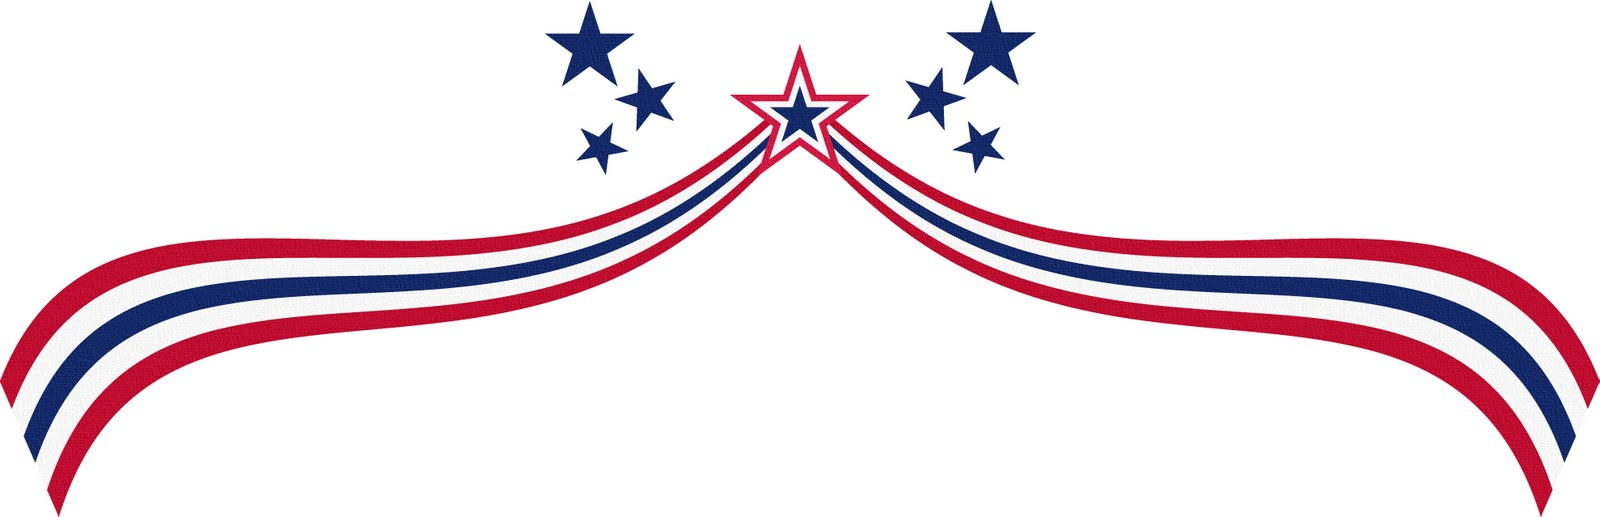 Free Clipart 4th Of July Borders School Clipart